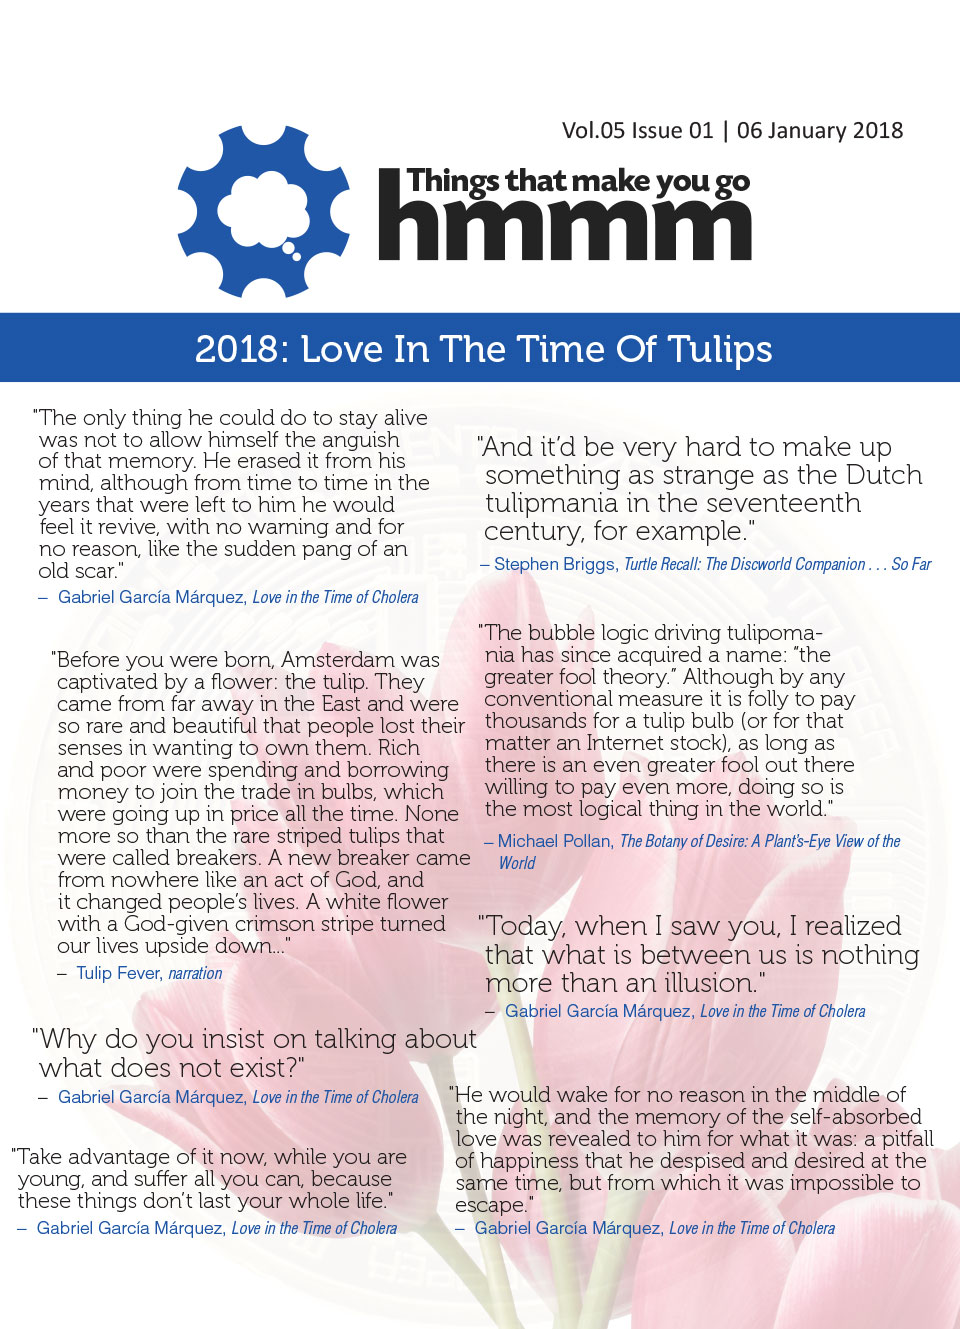 TTMYGH_2018_01_14_Love_In_The_Time_Of_Tulips